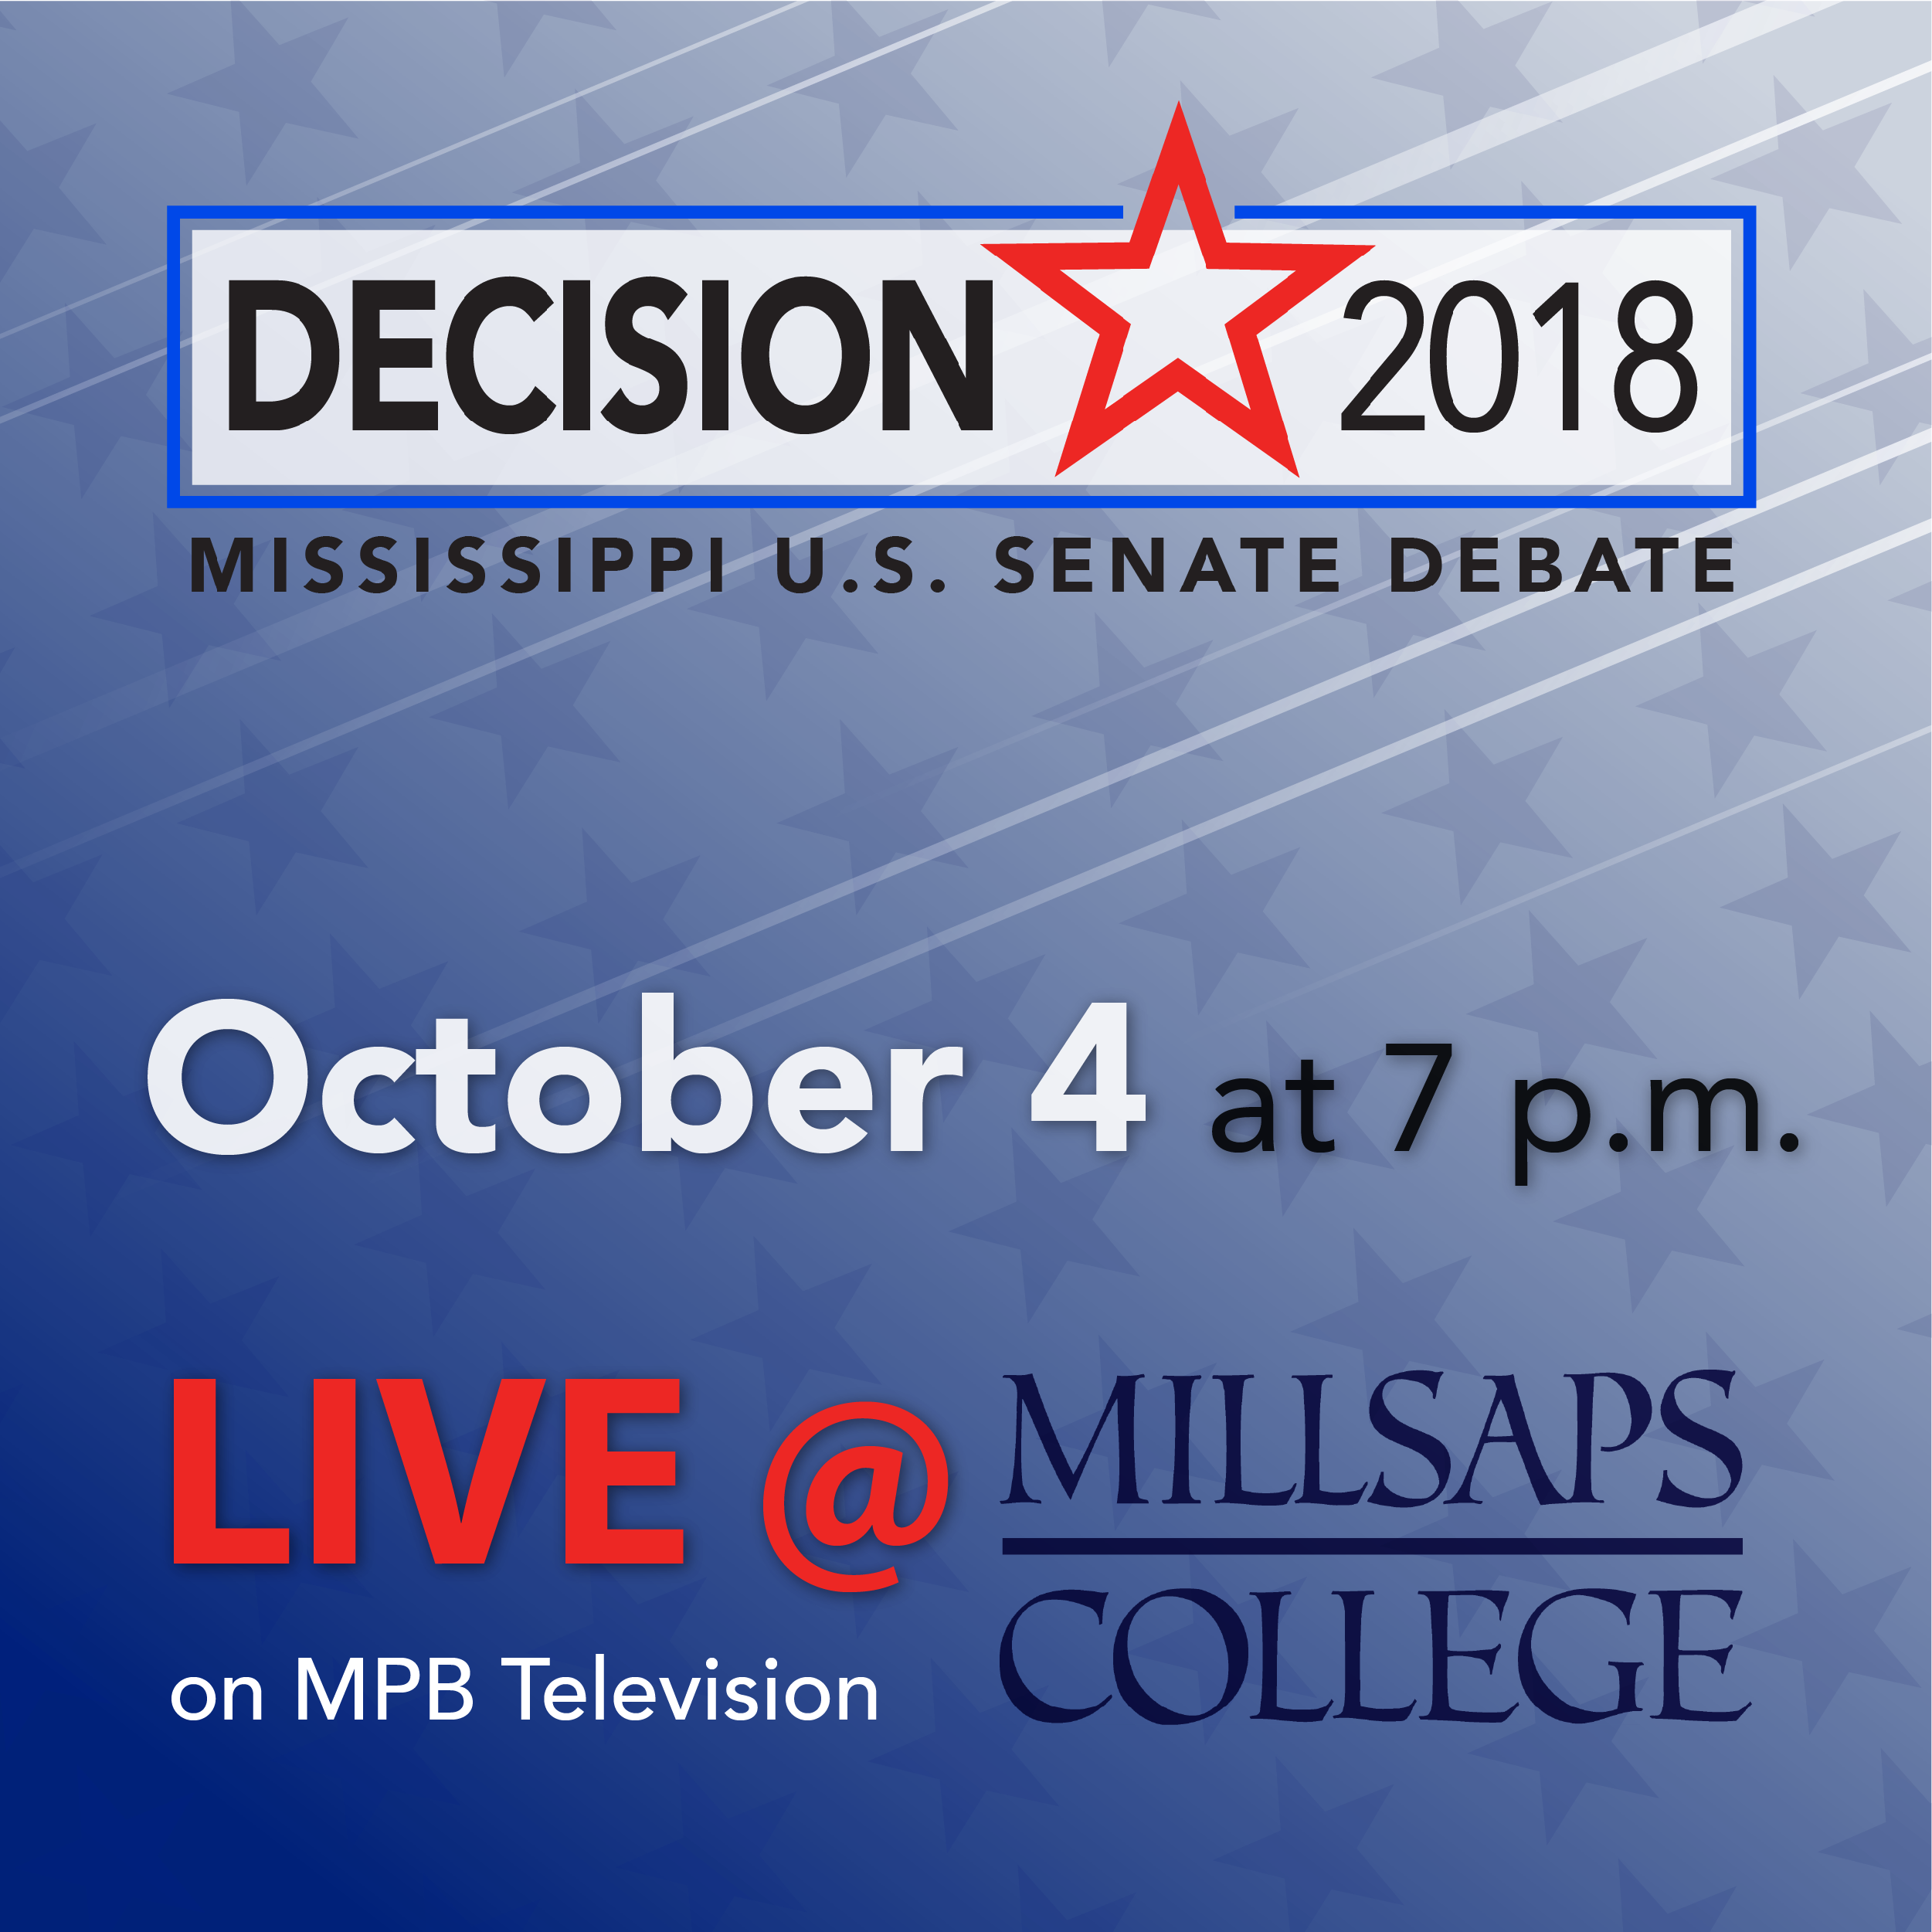 Don't miss the upcoming Senate Debate on October 4 at 7 p.m. on MPB Television.